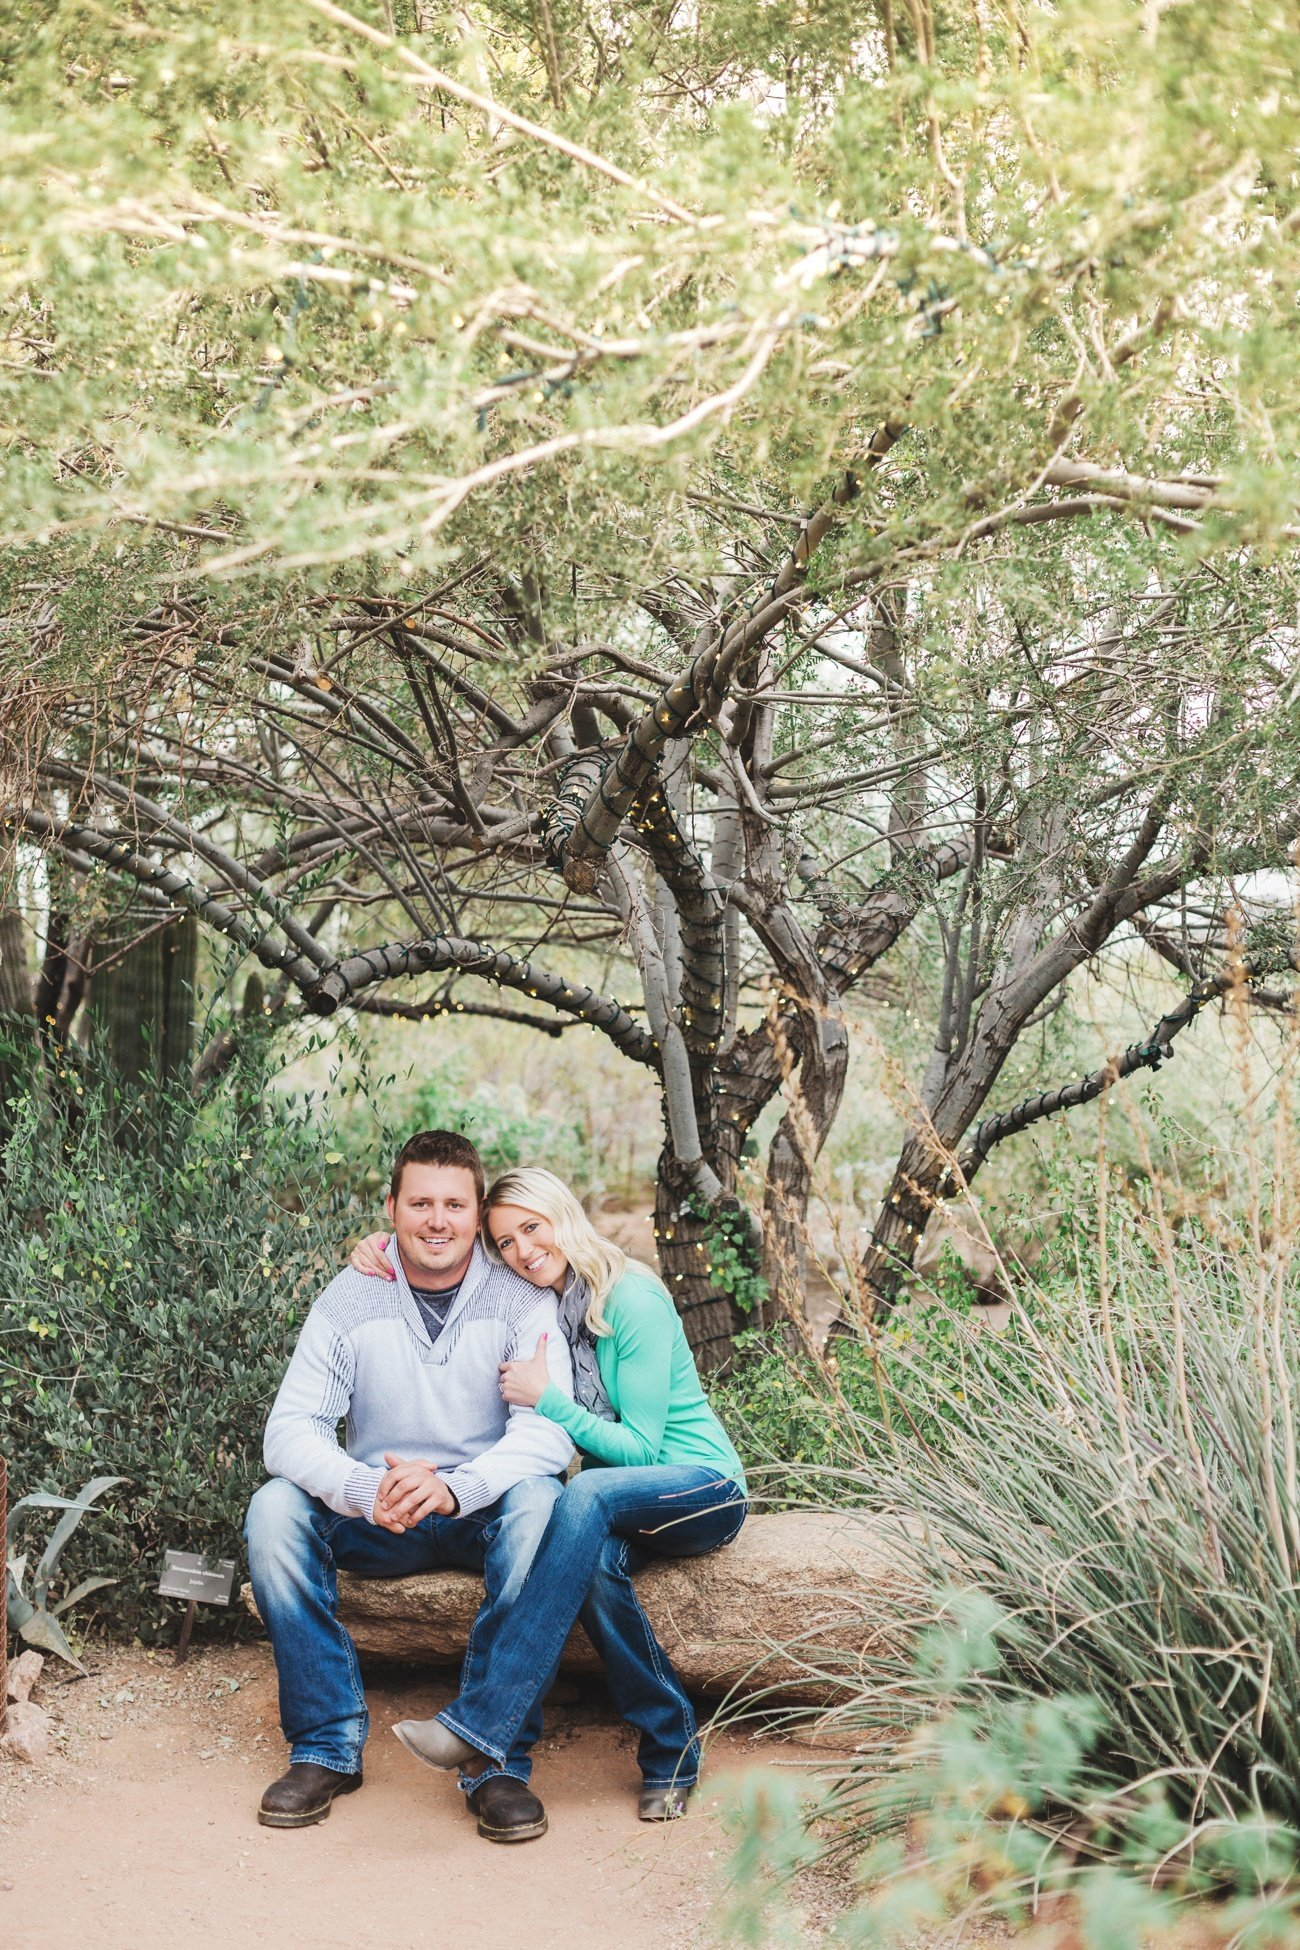 Engagements Colorado Springs Engagement Photographer Wedding Photos Pictures Portraits Arizona CO Denver Manitou Springs Scottsdale AZ 2016-06-27_0049